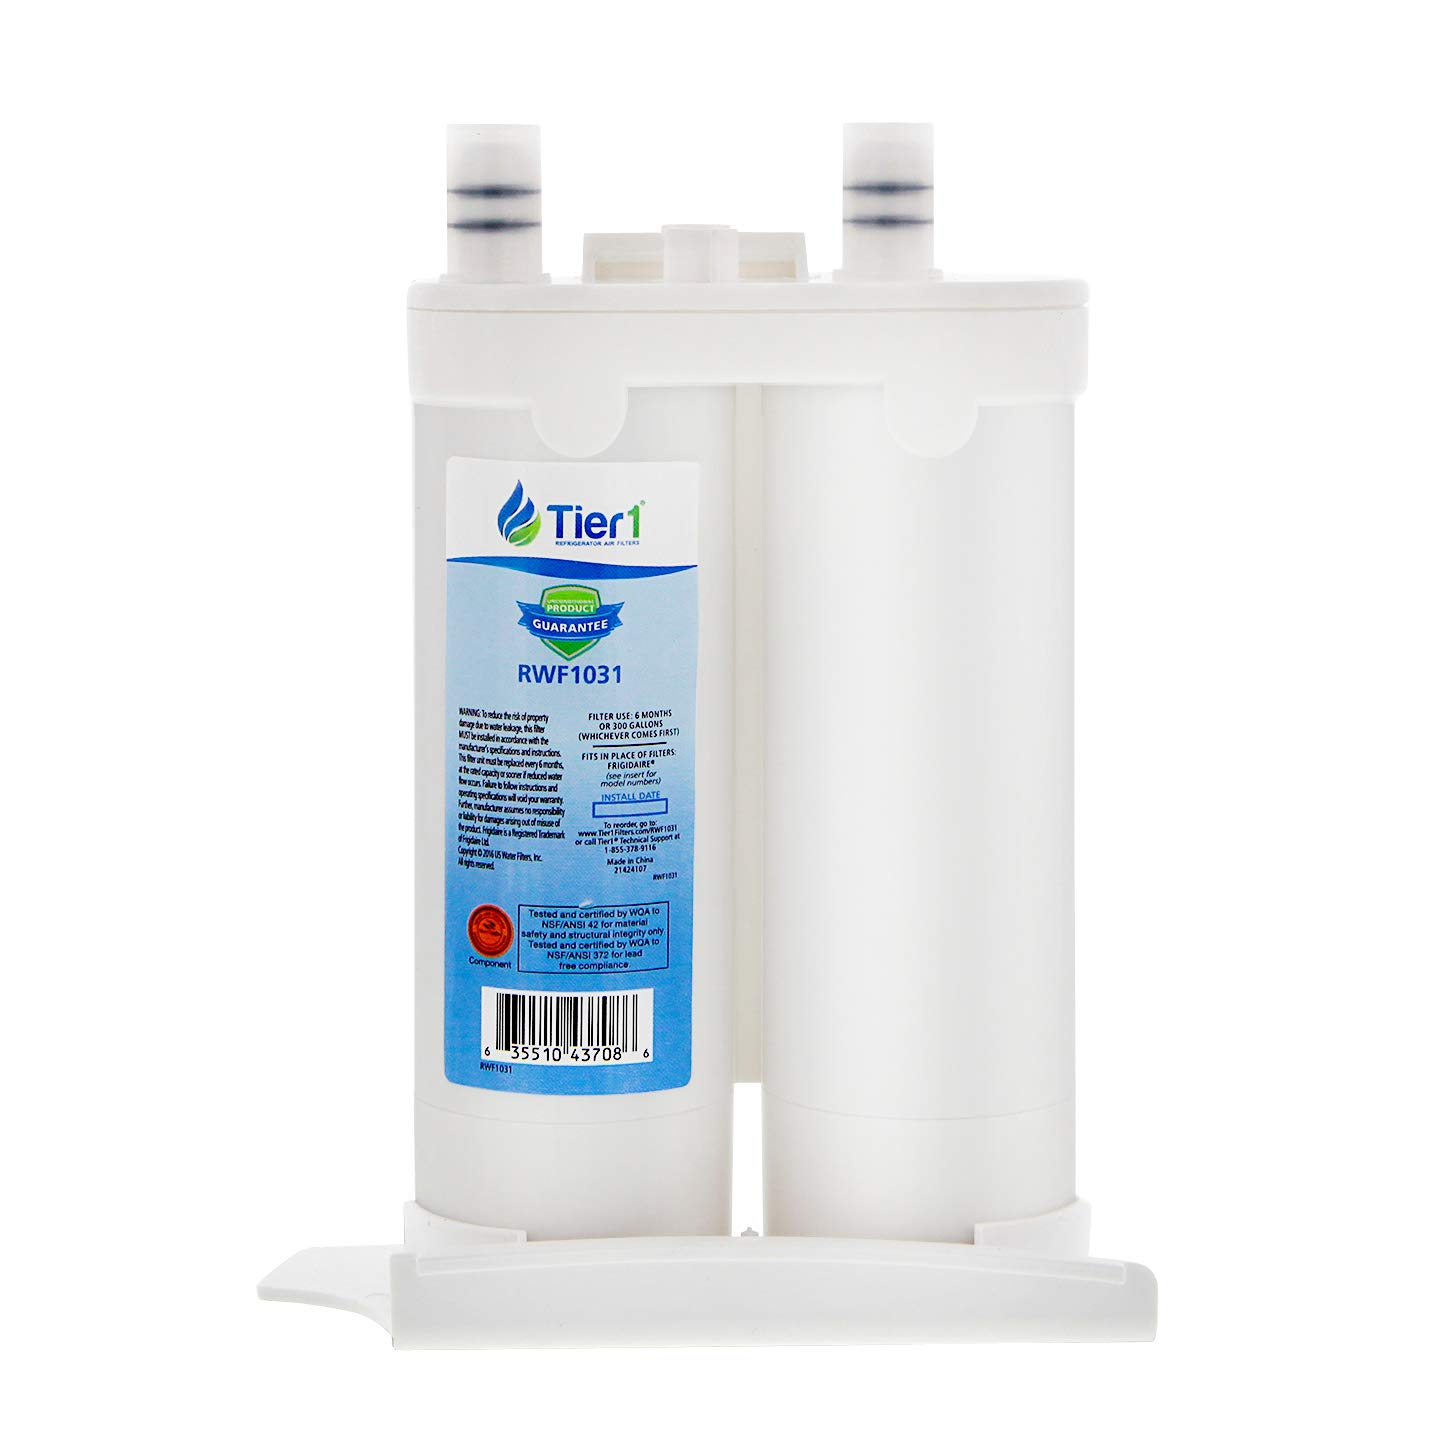 Tier1 Replacement for Frigidaire WF2CB PureSource2, NGFC 2000, 1004-42-FA,  469911, 469916, FC 100 Refrigerator Water Filter